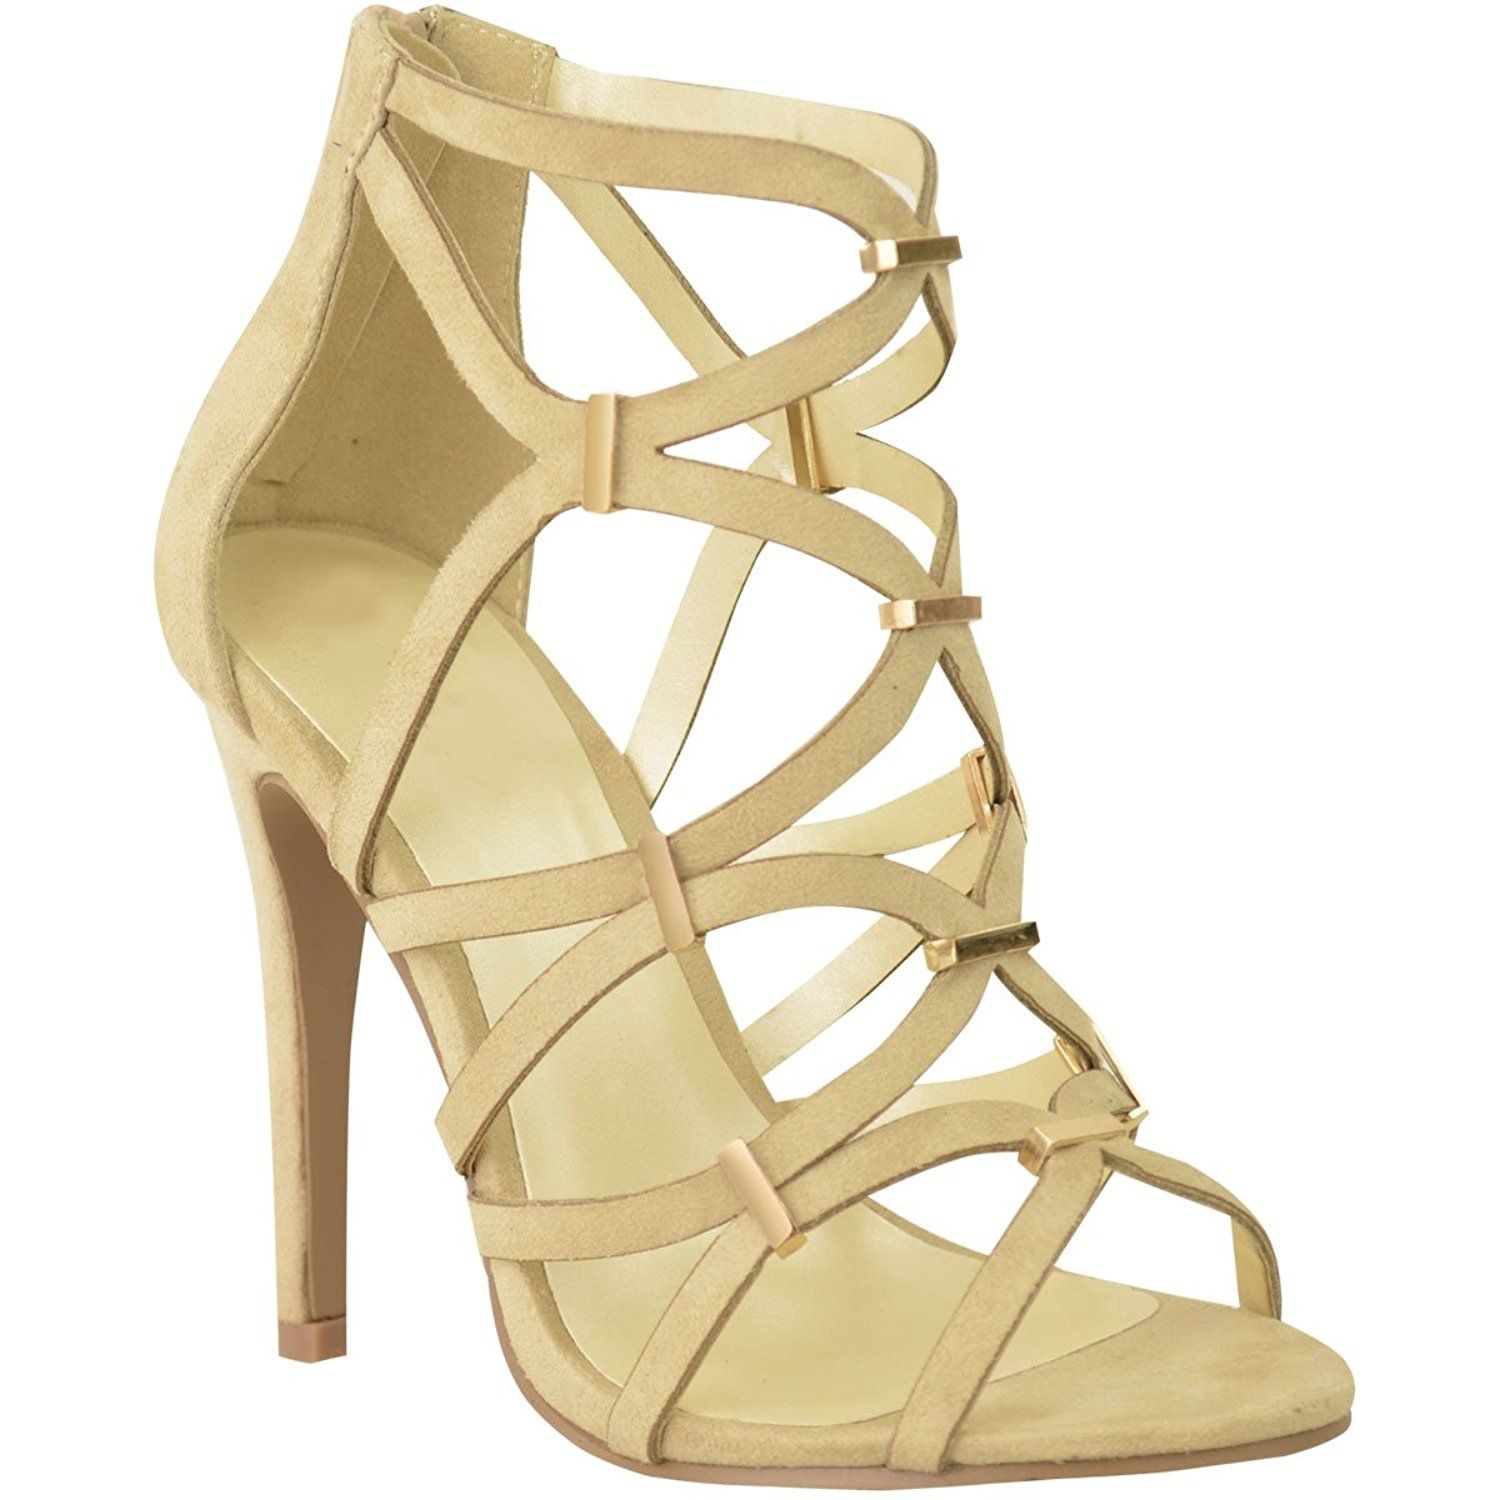 776d9ddeb4d Fashion Thirsty Womens High Heels Stilettos Cut Out Ankle Strappy Peep Toe  Gladiator Size   Want